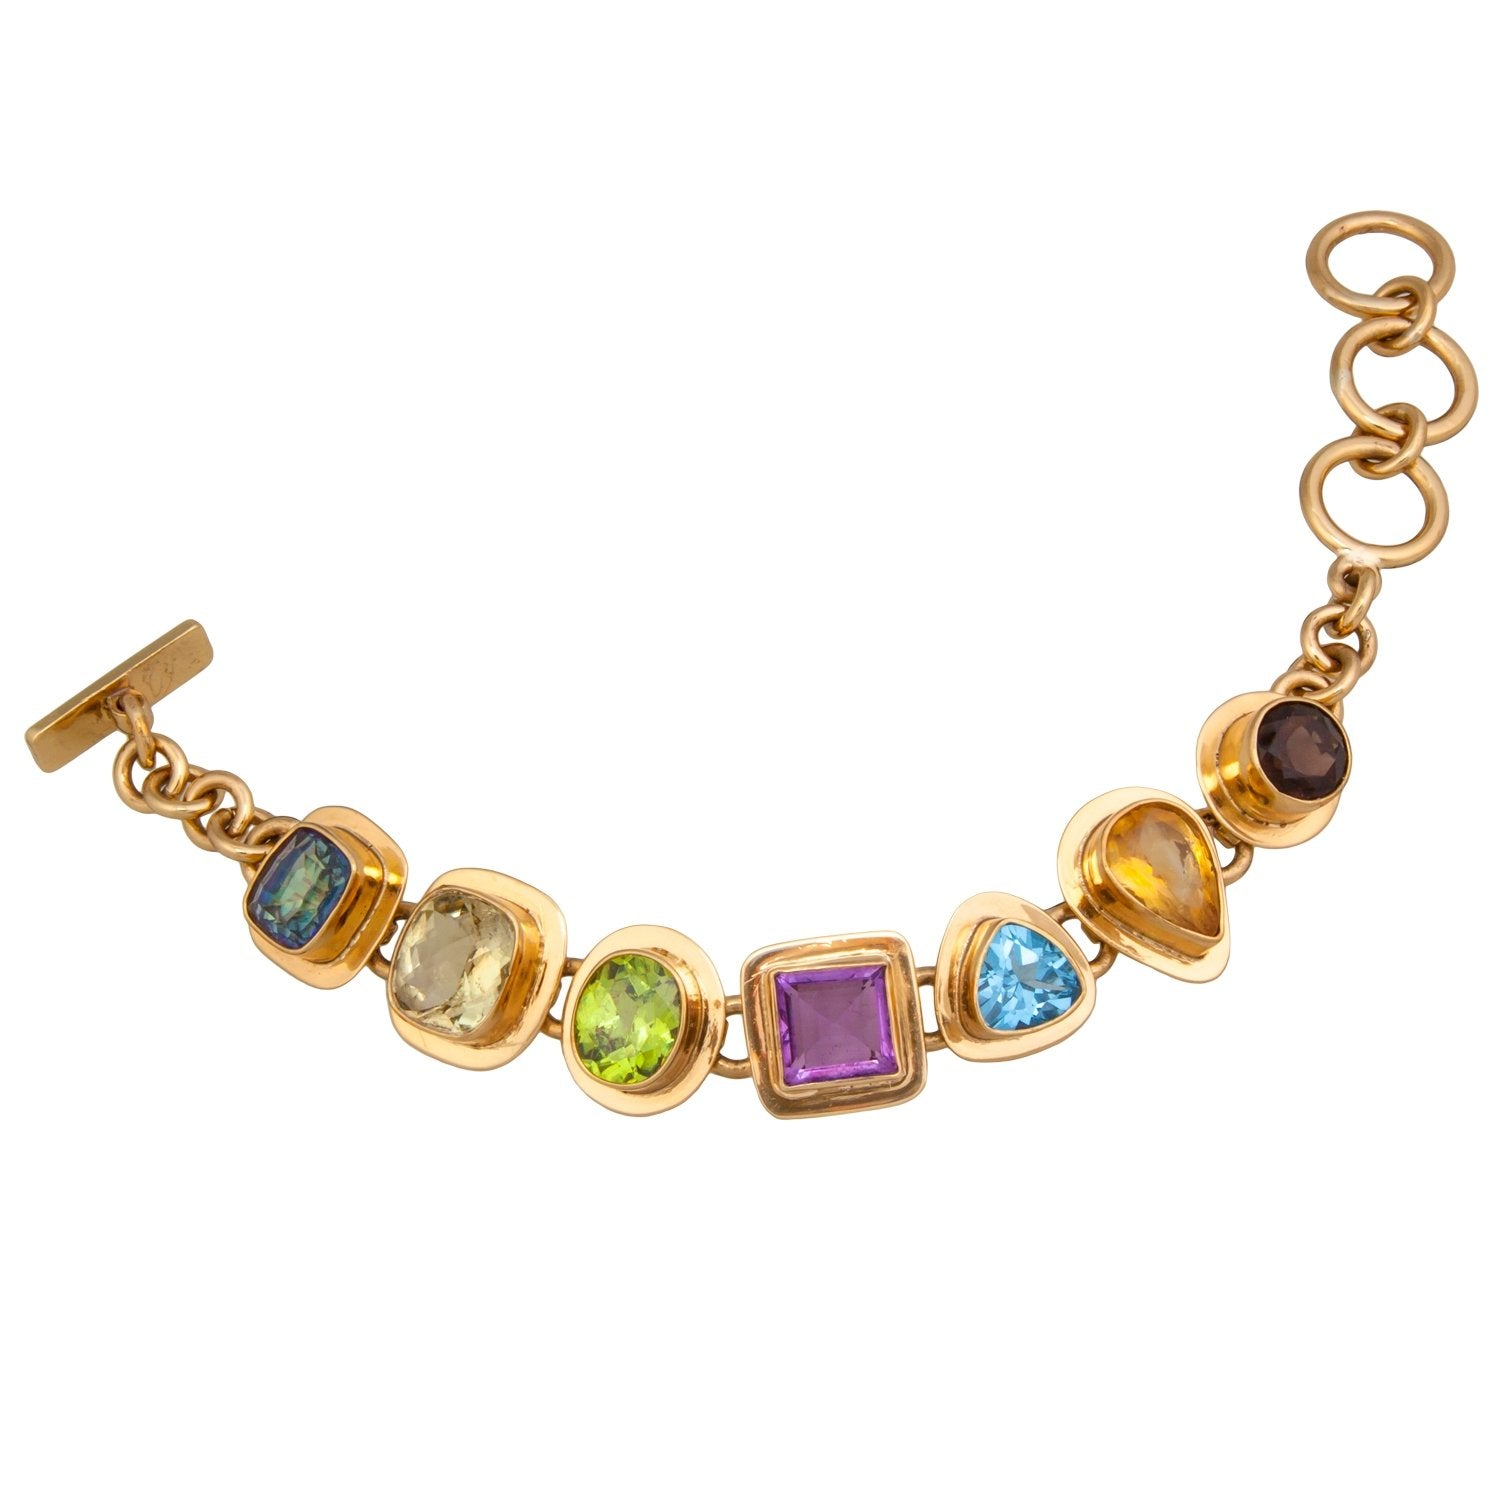 Alchemia Multi-Gemstone Bracelet with Detailed Edge | Charles Albert Jewelry